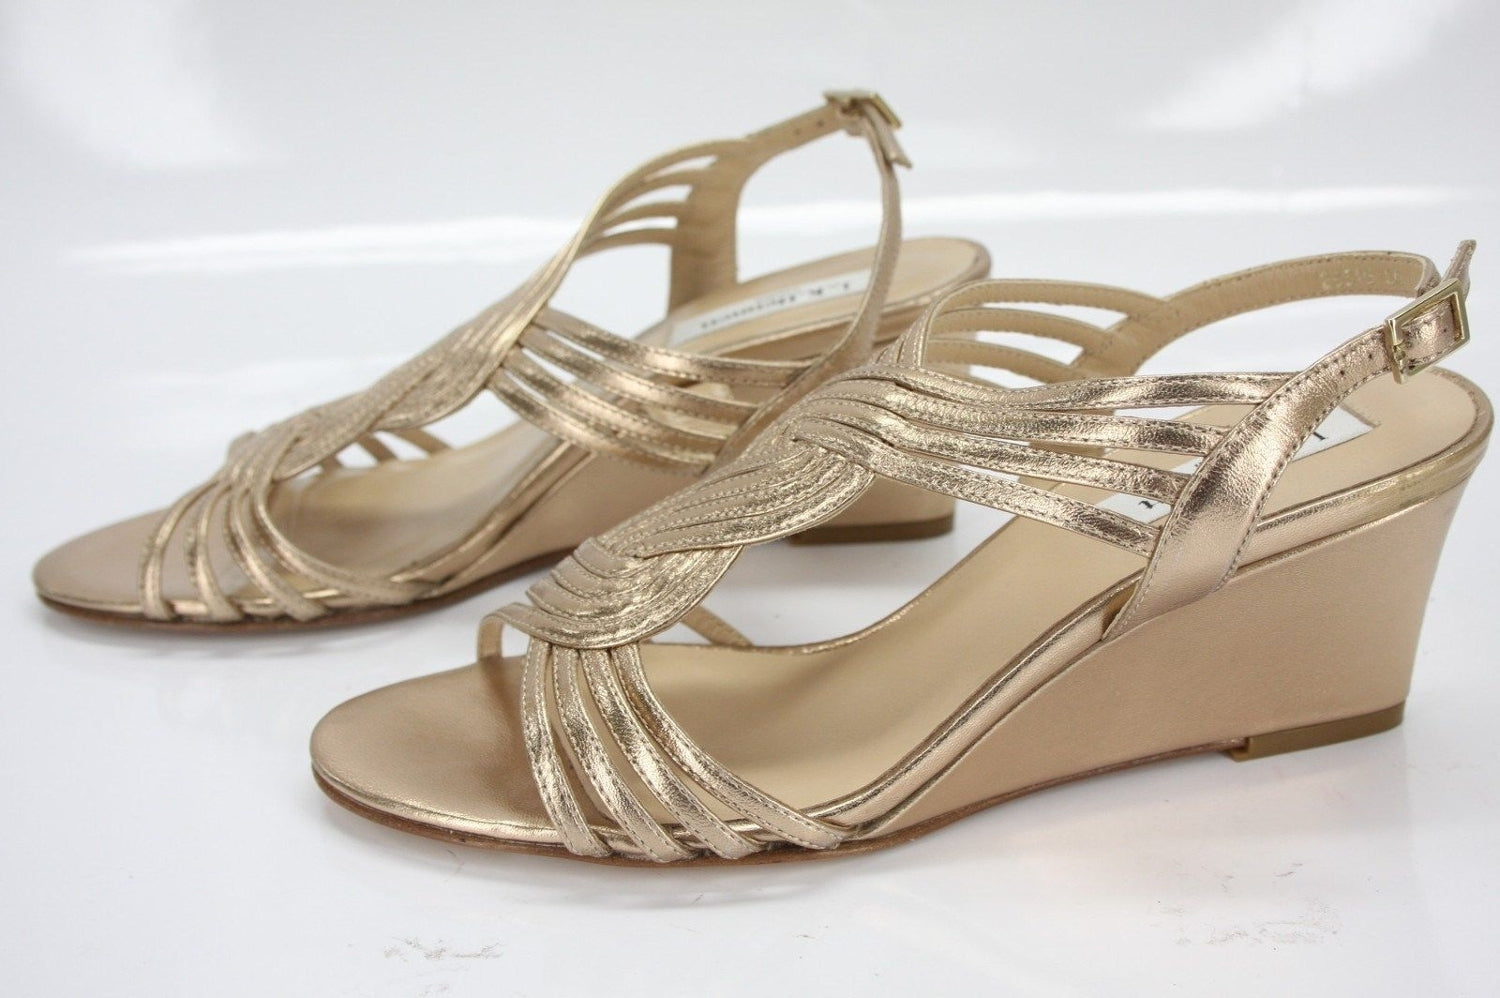 L.K. Bennett Metallic Gold Leather Dunes Caged Strappy Wedge Sandals size 36 New